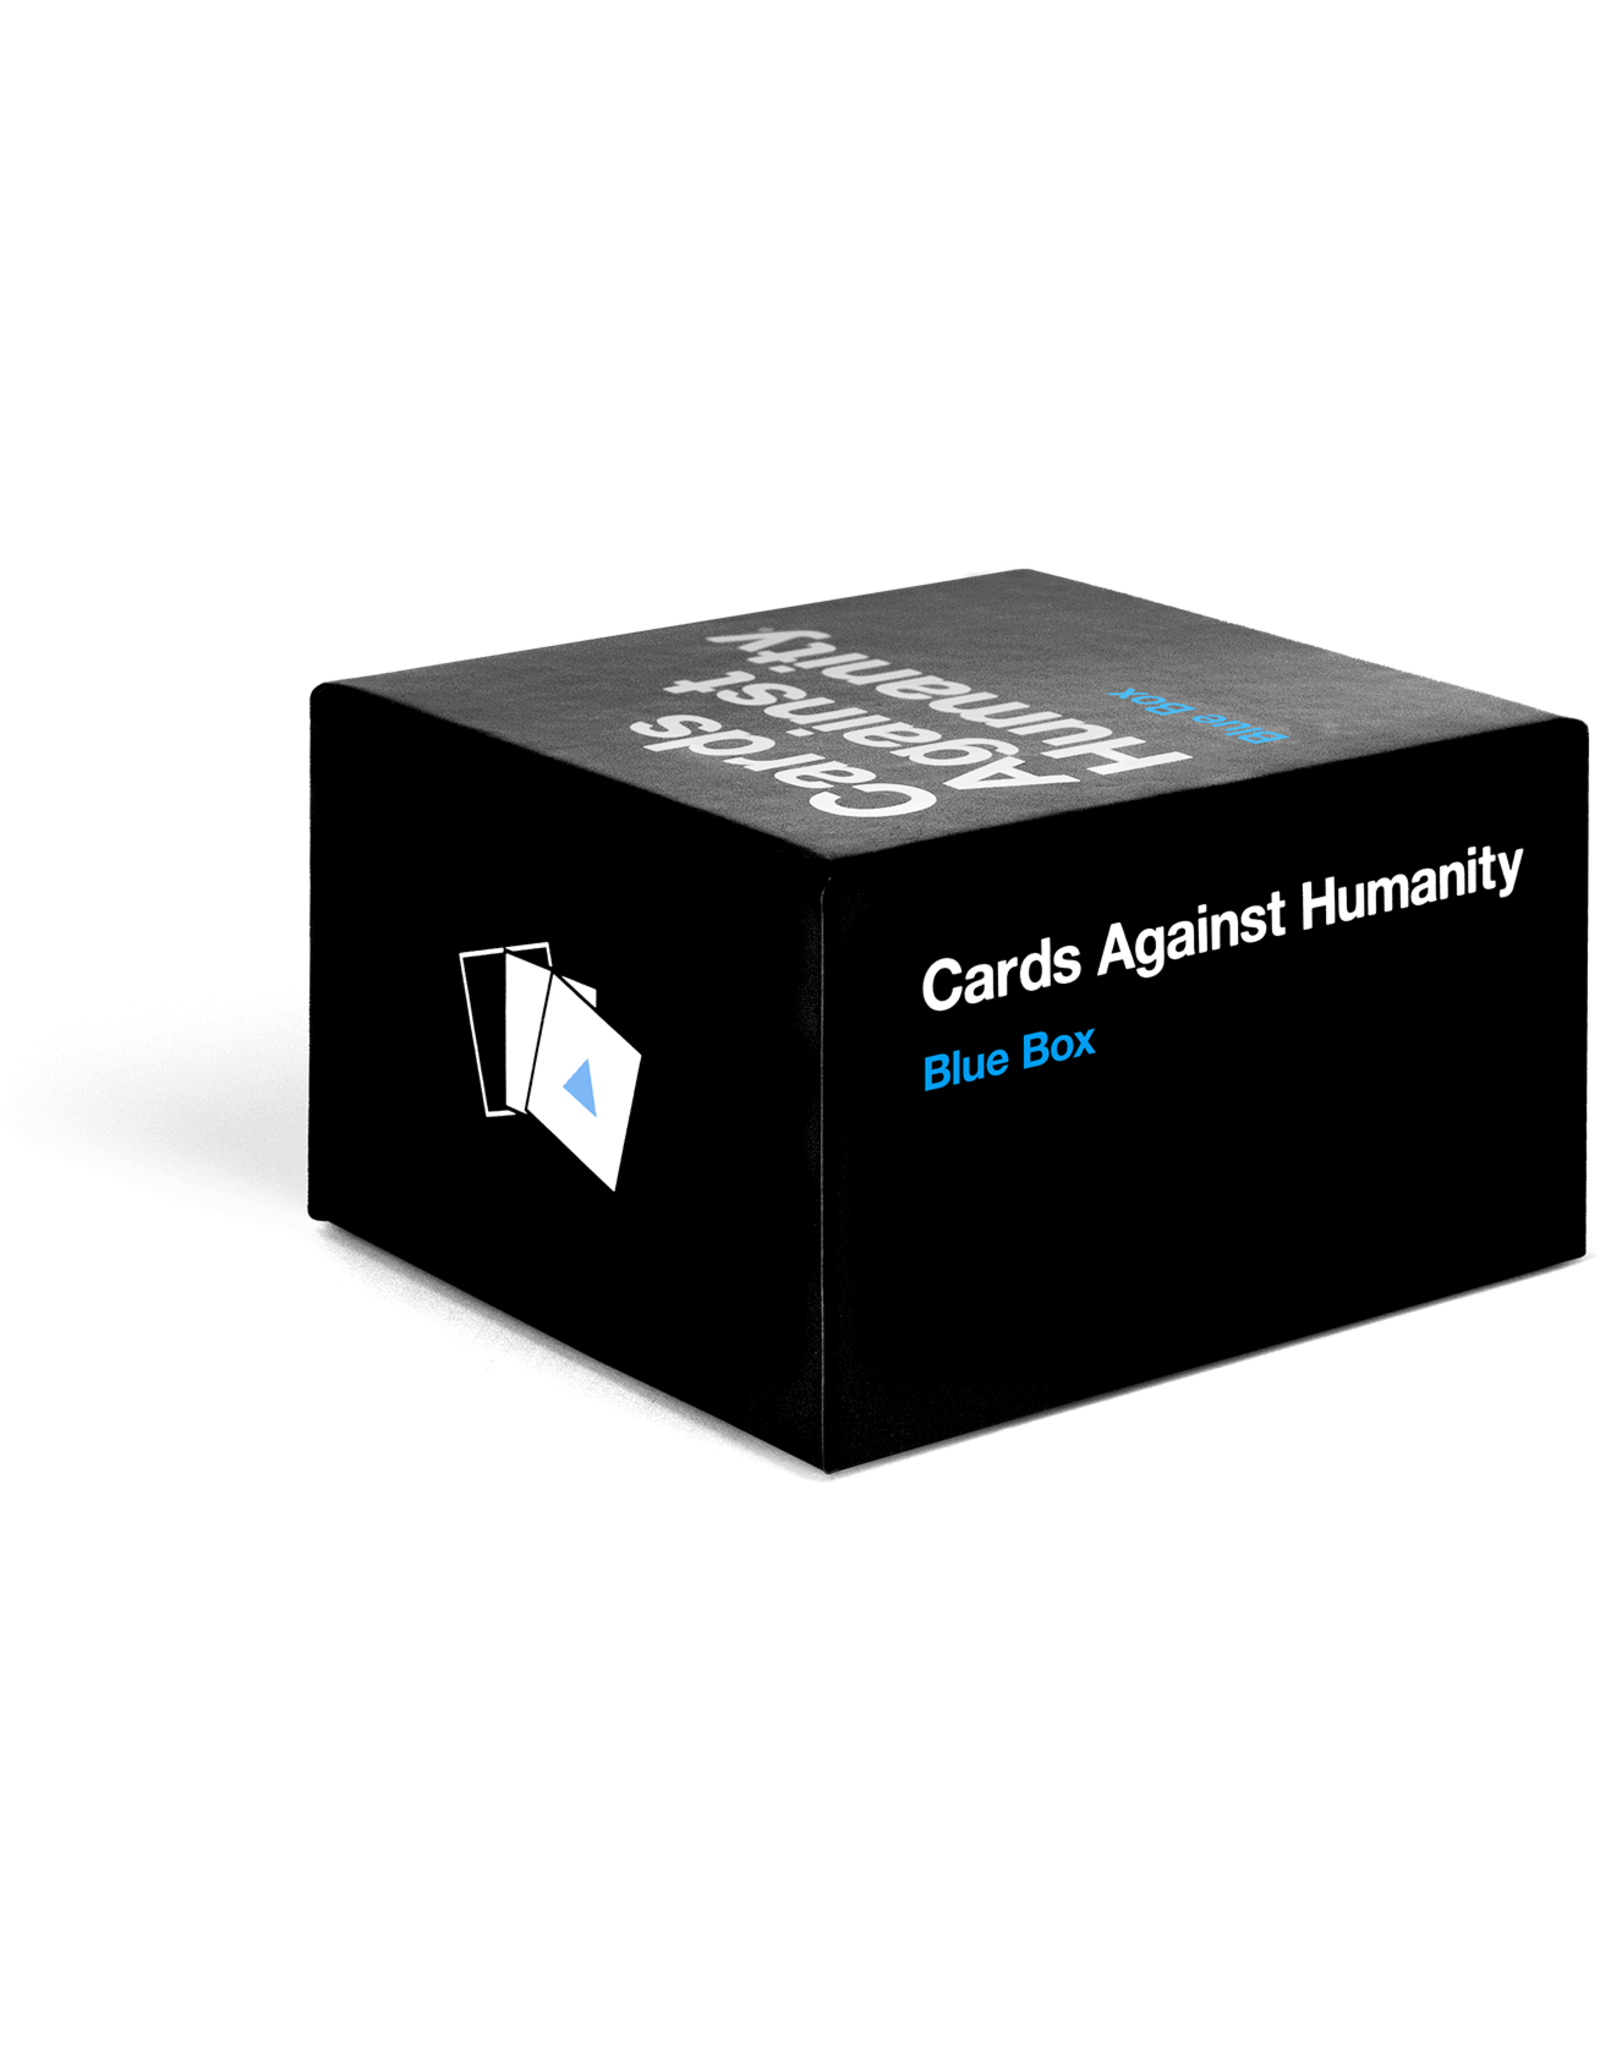 Cards Against Humanity Cards Against Humanity: Blue Box